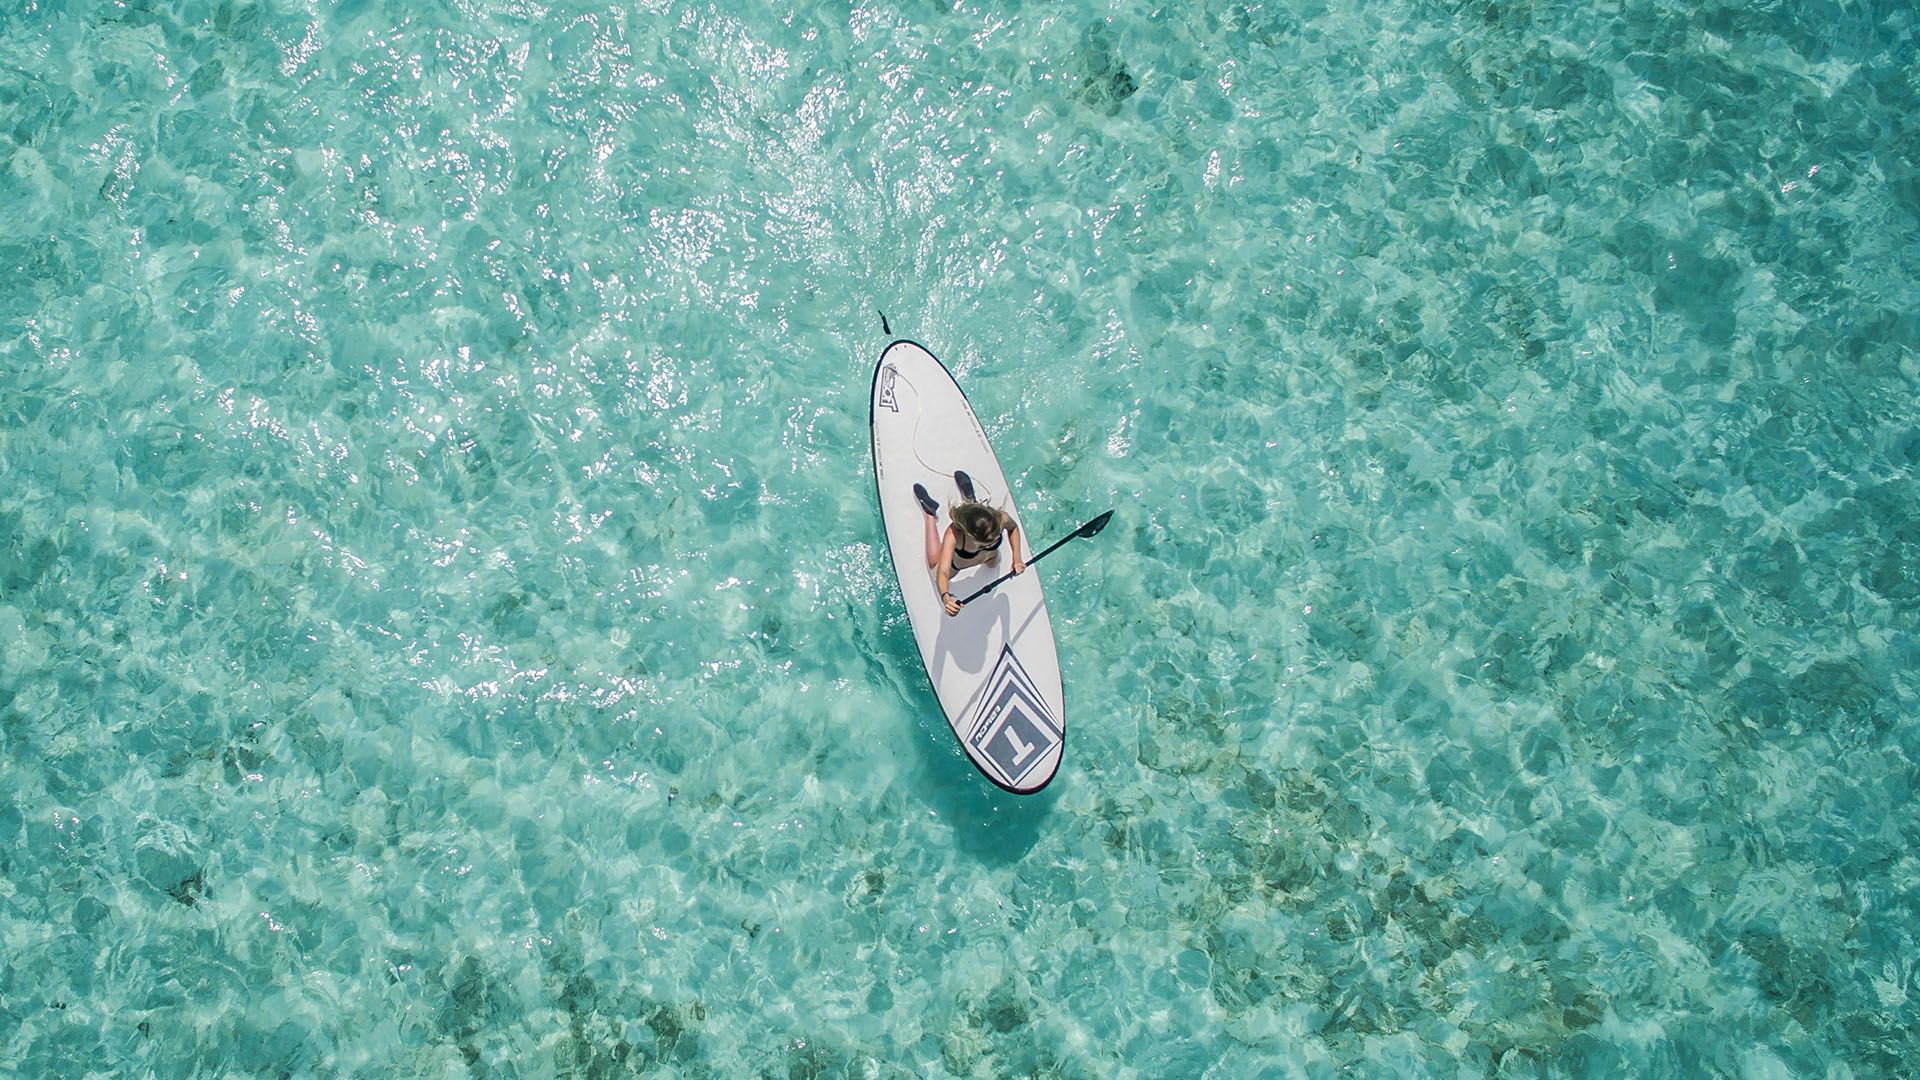 Paddle boarder in Hawaii